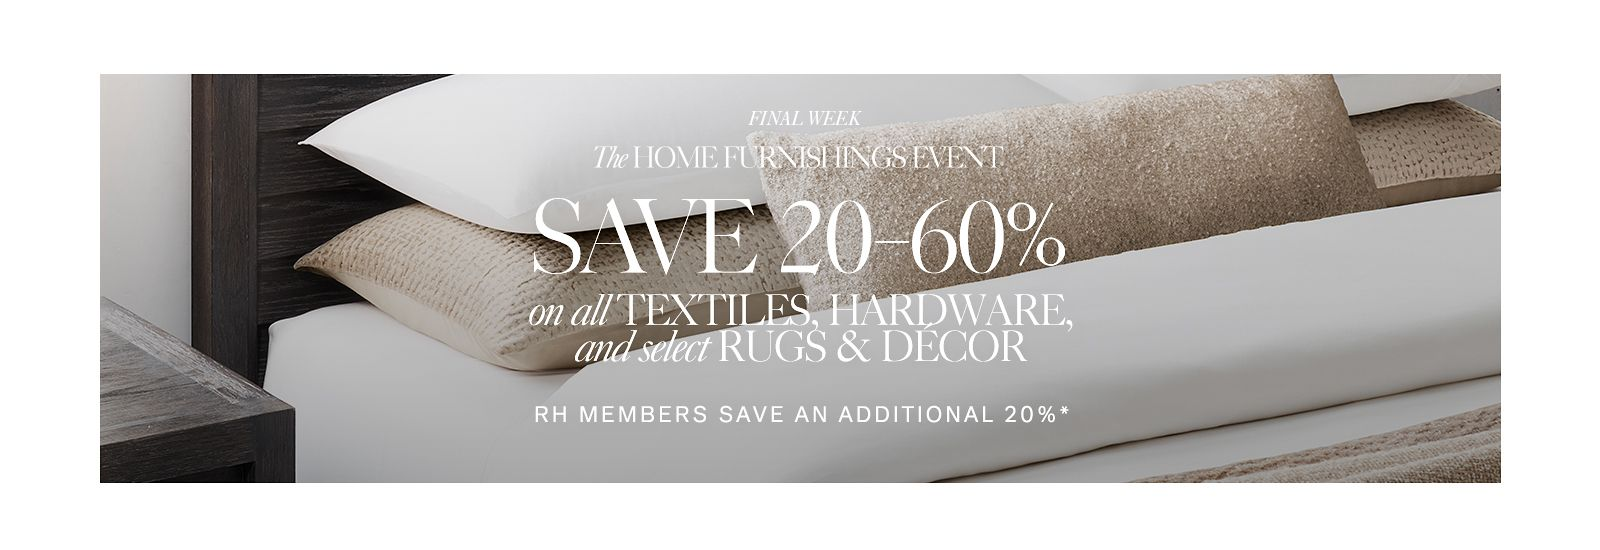 Save 20-60% at the Home Furnishings Event